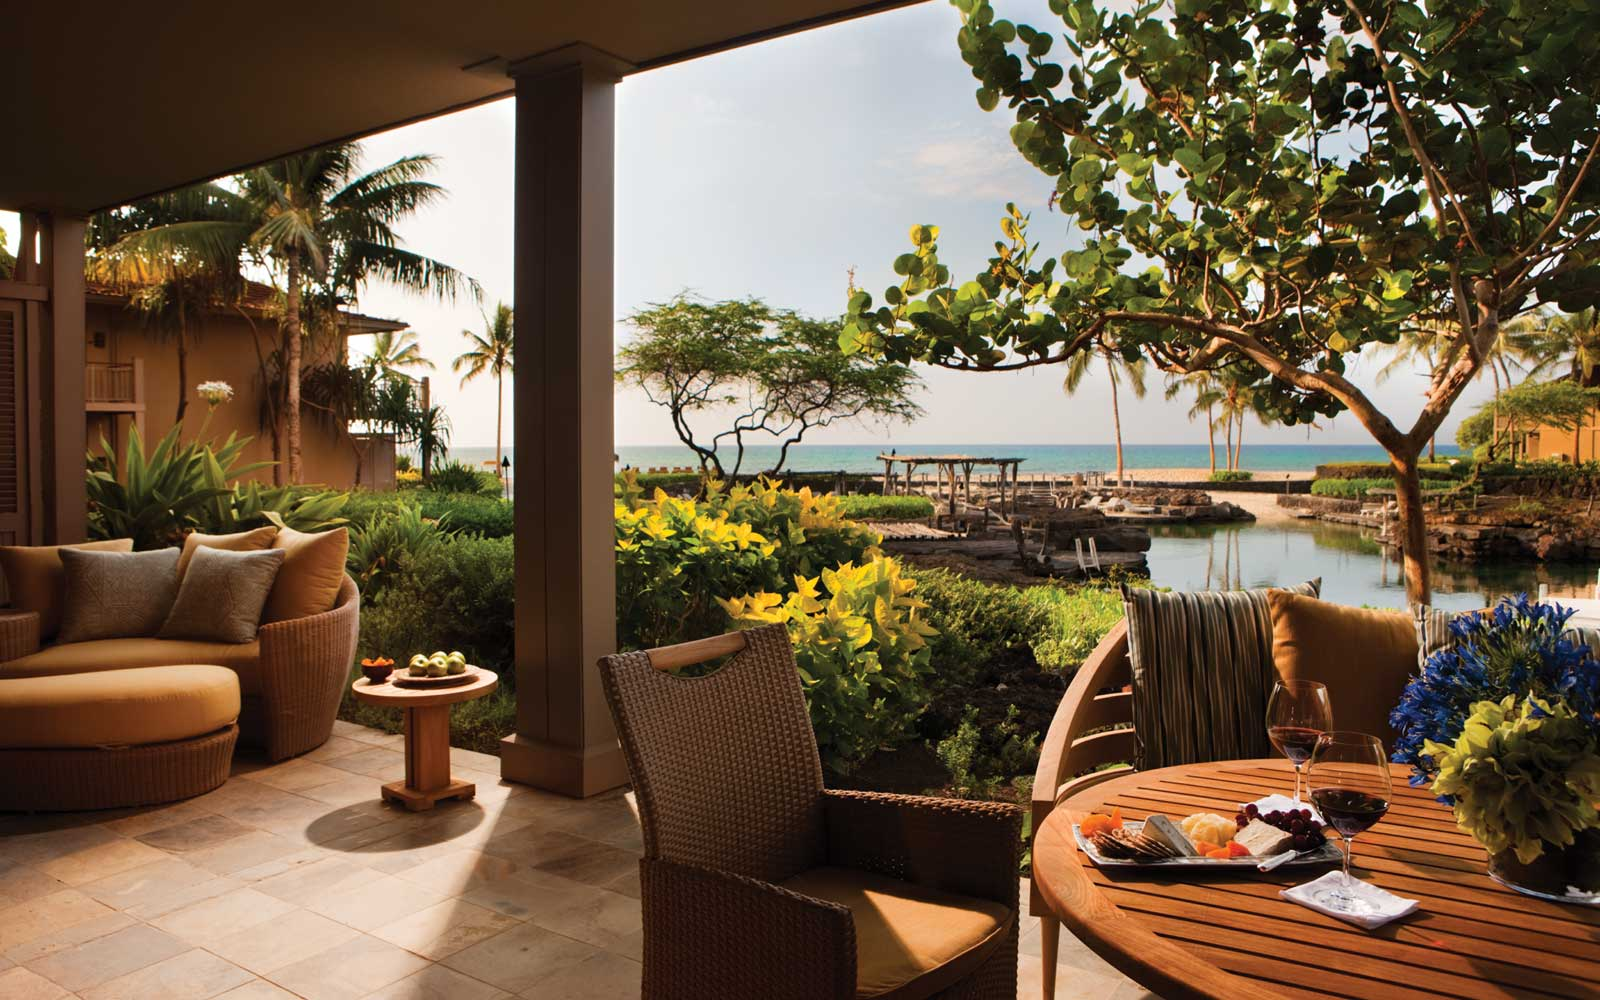 View from the terrace at the Four Seasons Resort Hualalai, in Hawaii